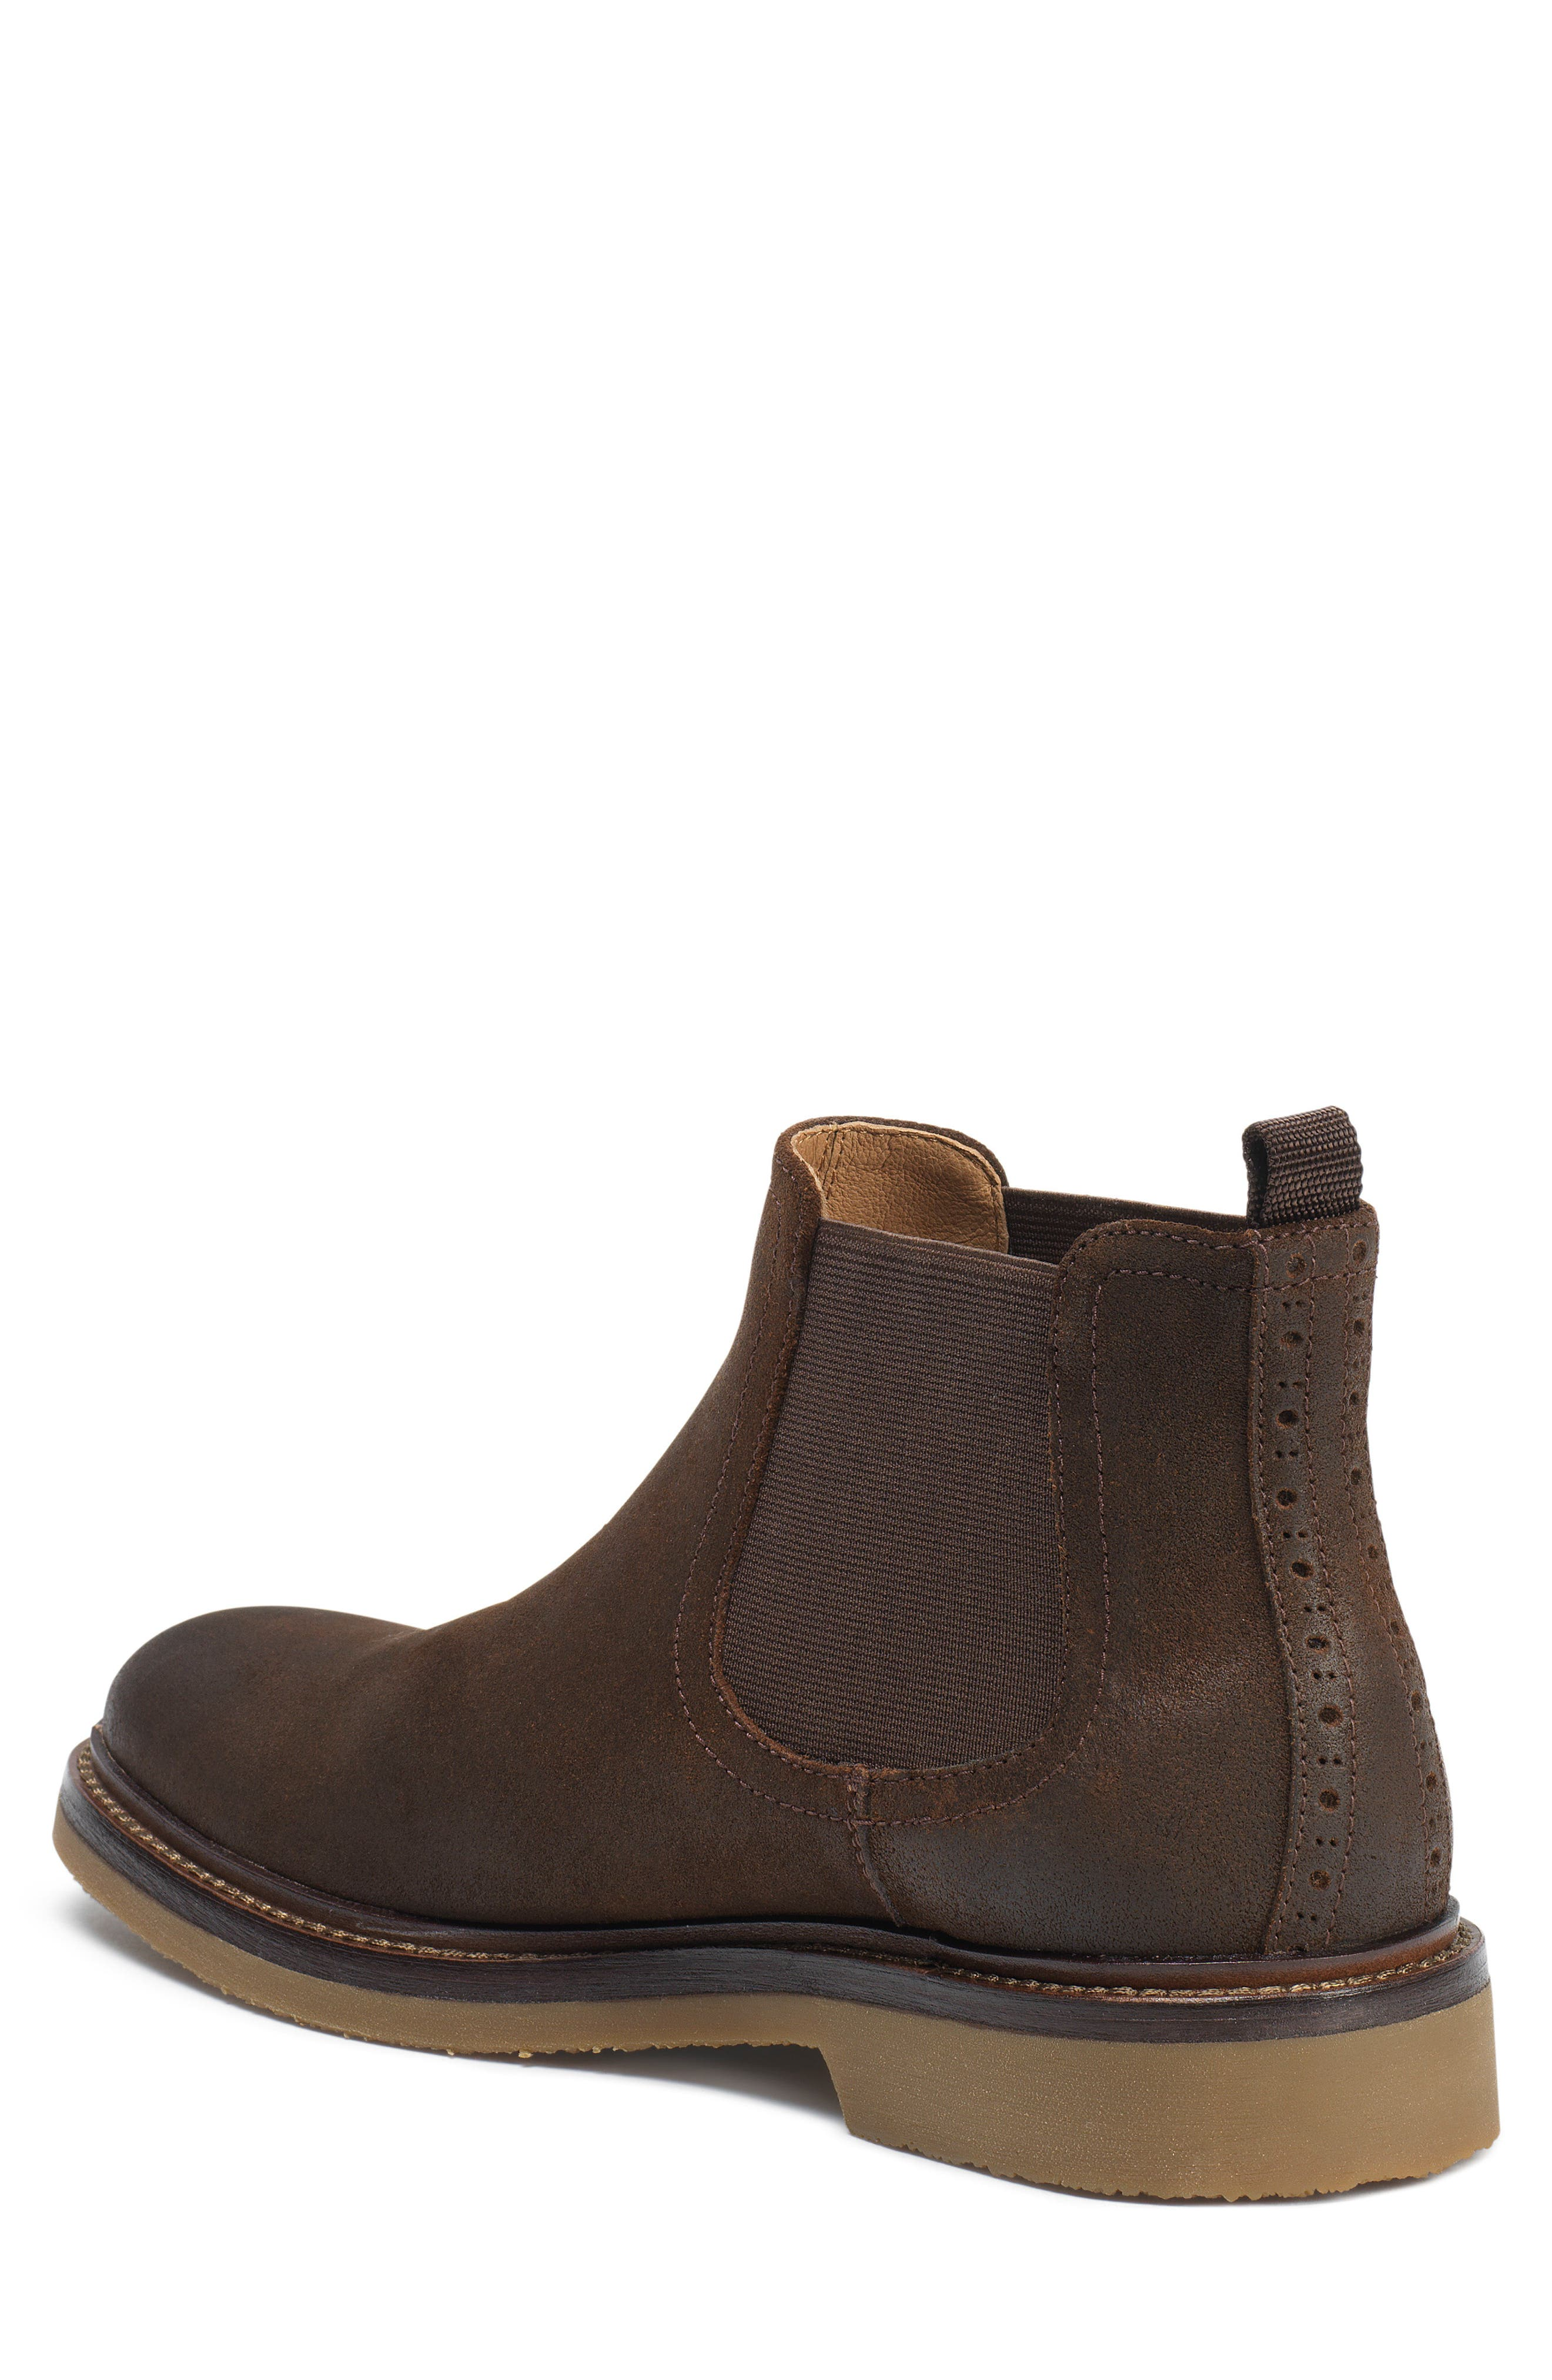 Carter Chelsea Boot,                             Alternate thumbnail 2, color,                             Snuff Waxed Suede